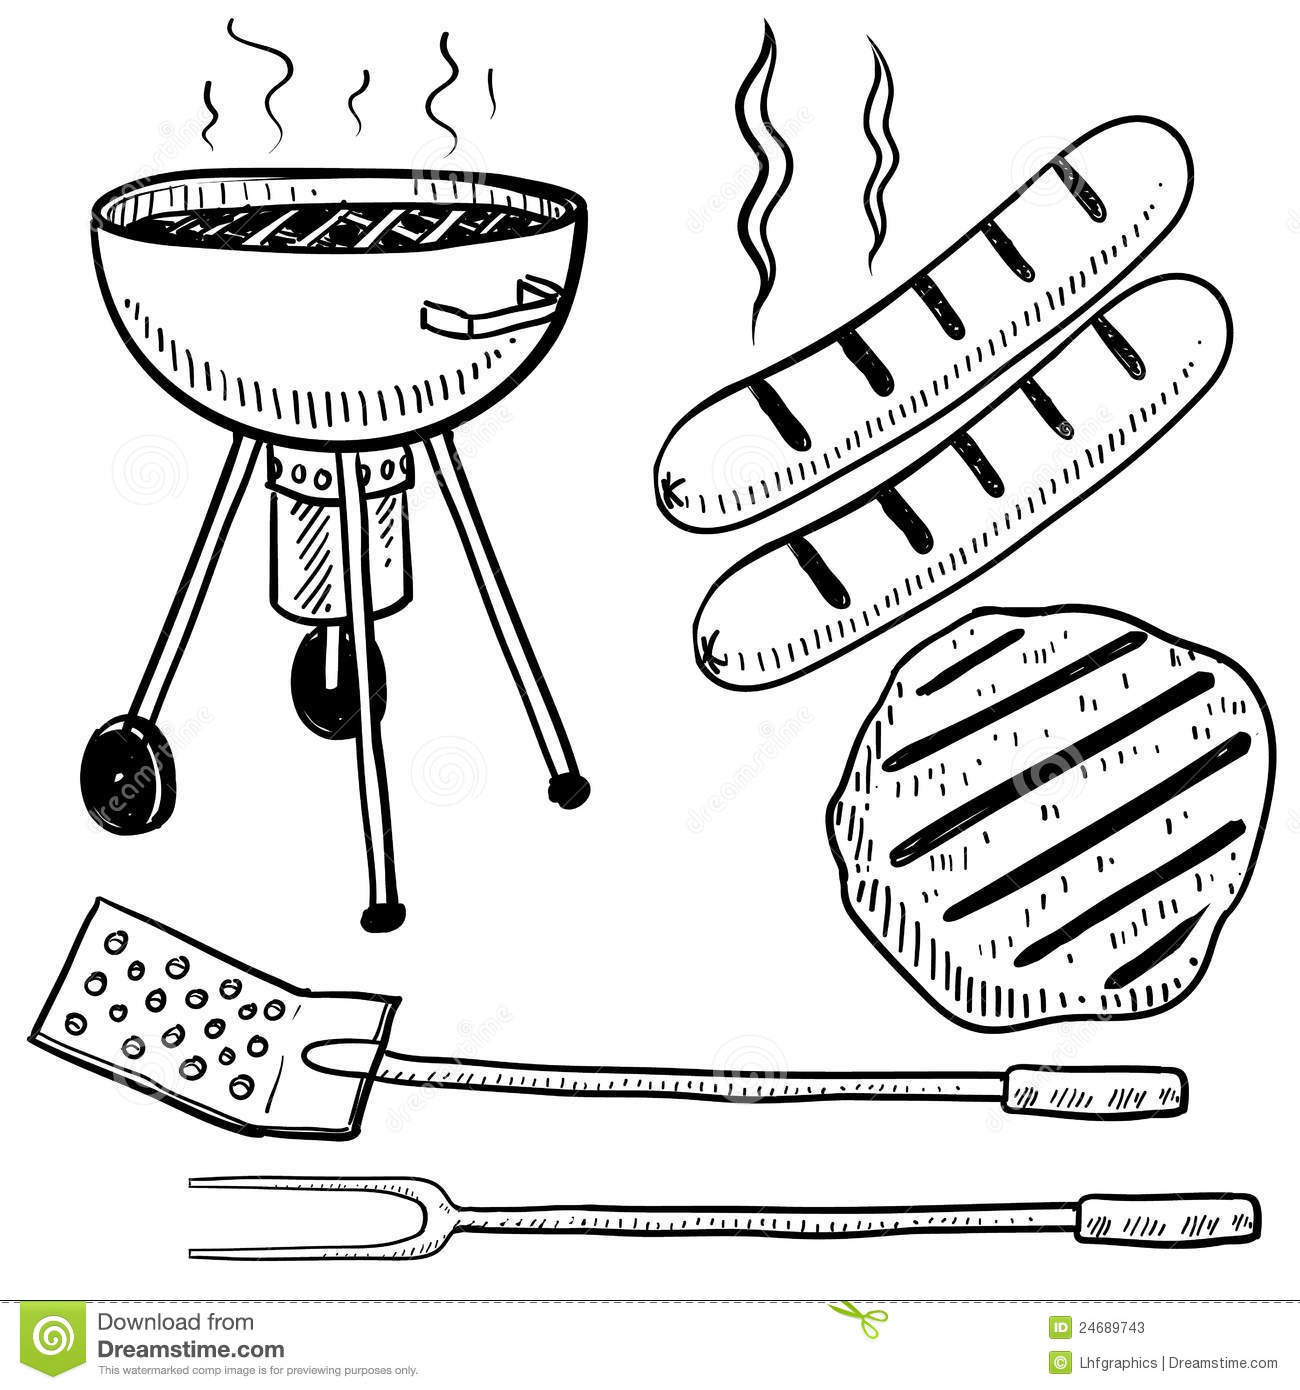 Cookout clipart black and white, Cookout black and white.